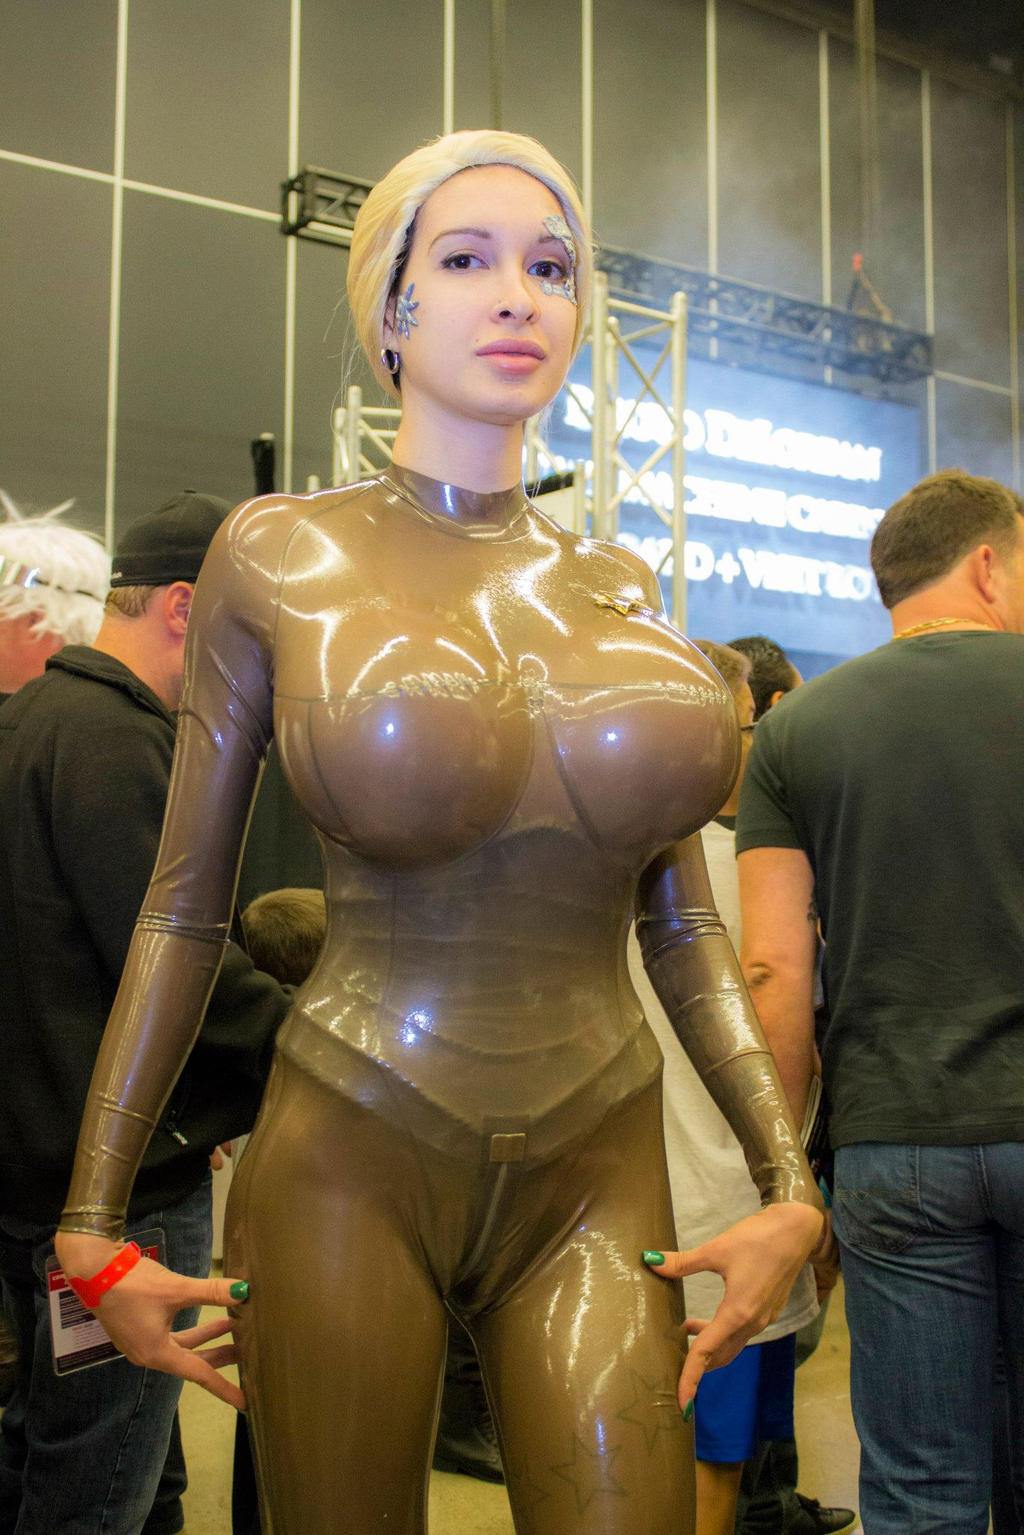 Can look star trek cosplay sexy big boobs know one